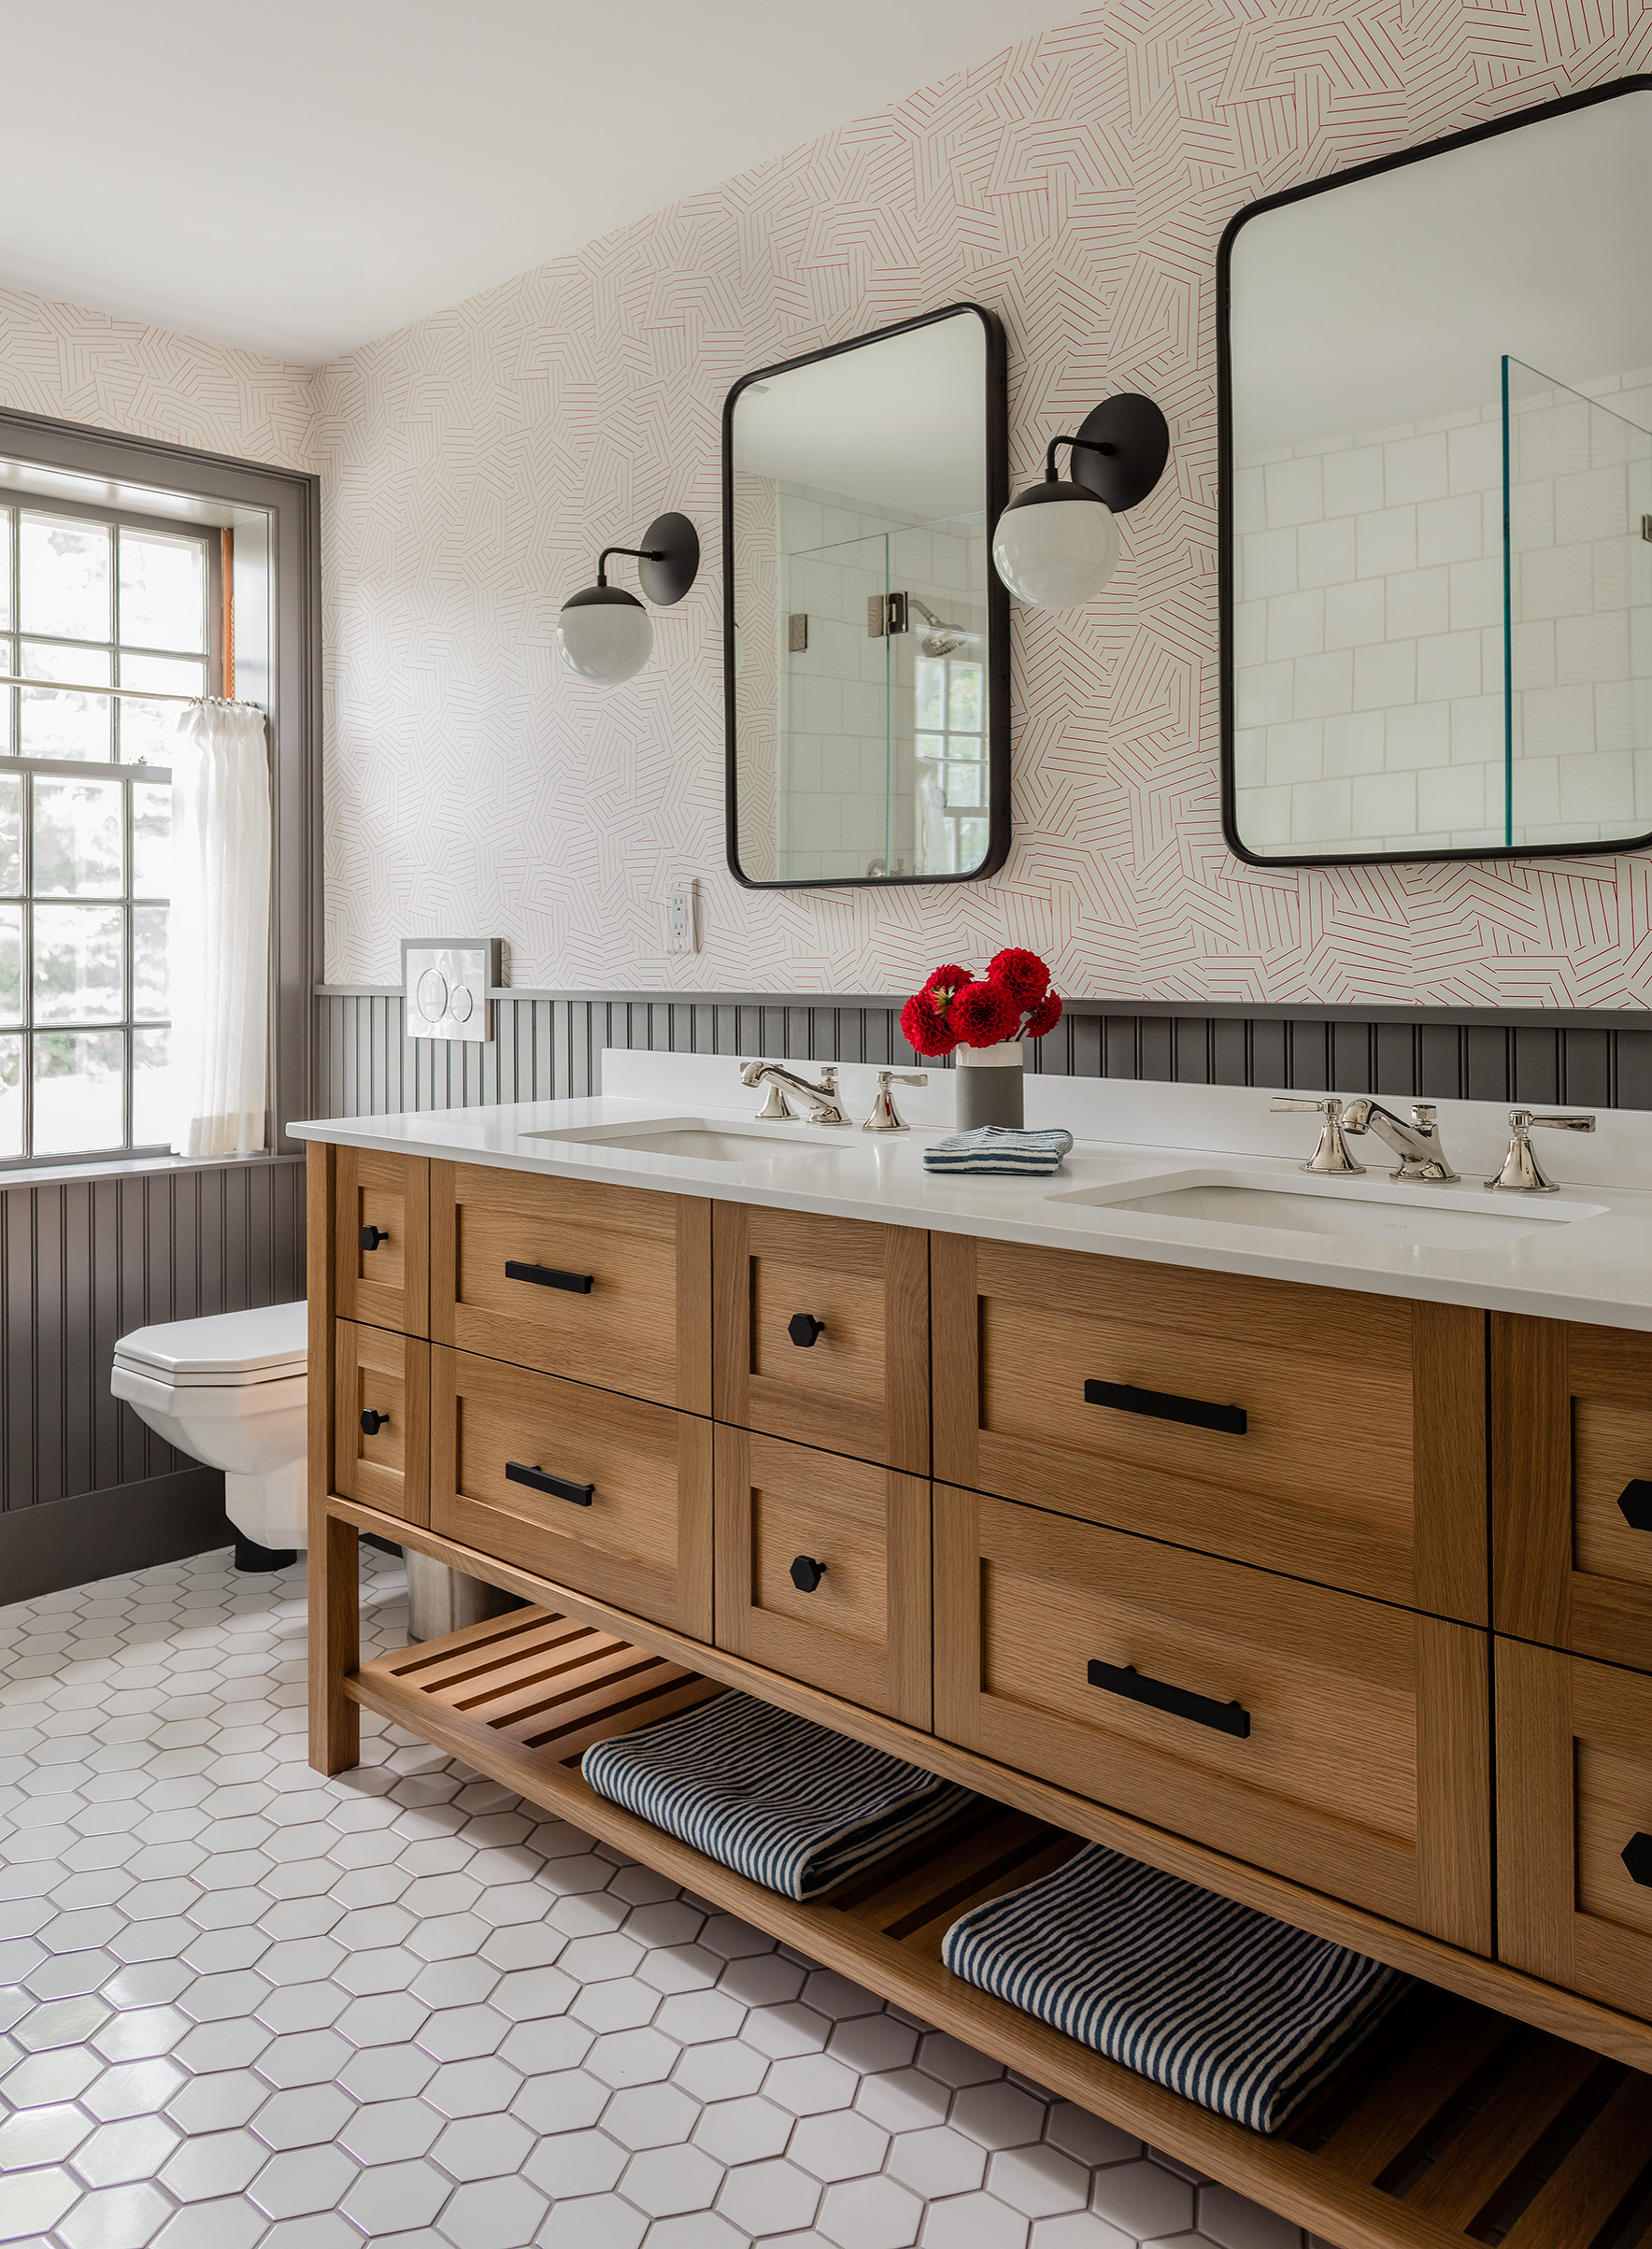 75 Beautiful Wall Paneling Bathroom Pictures Ideas January 2021 Houzz